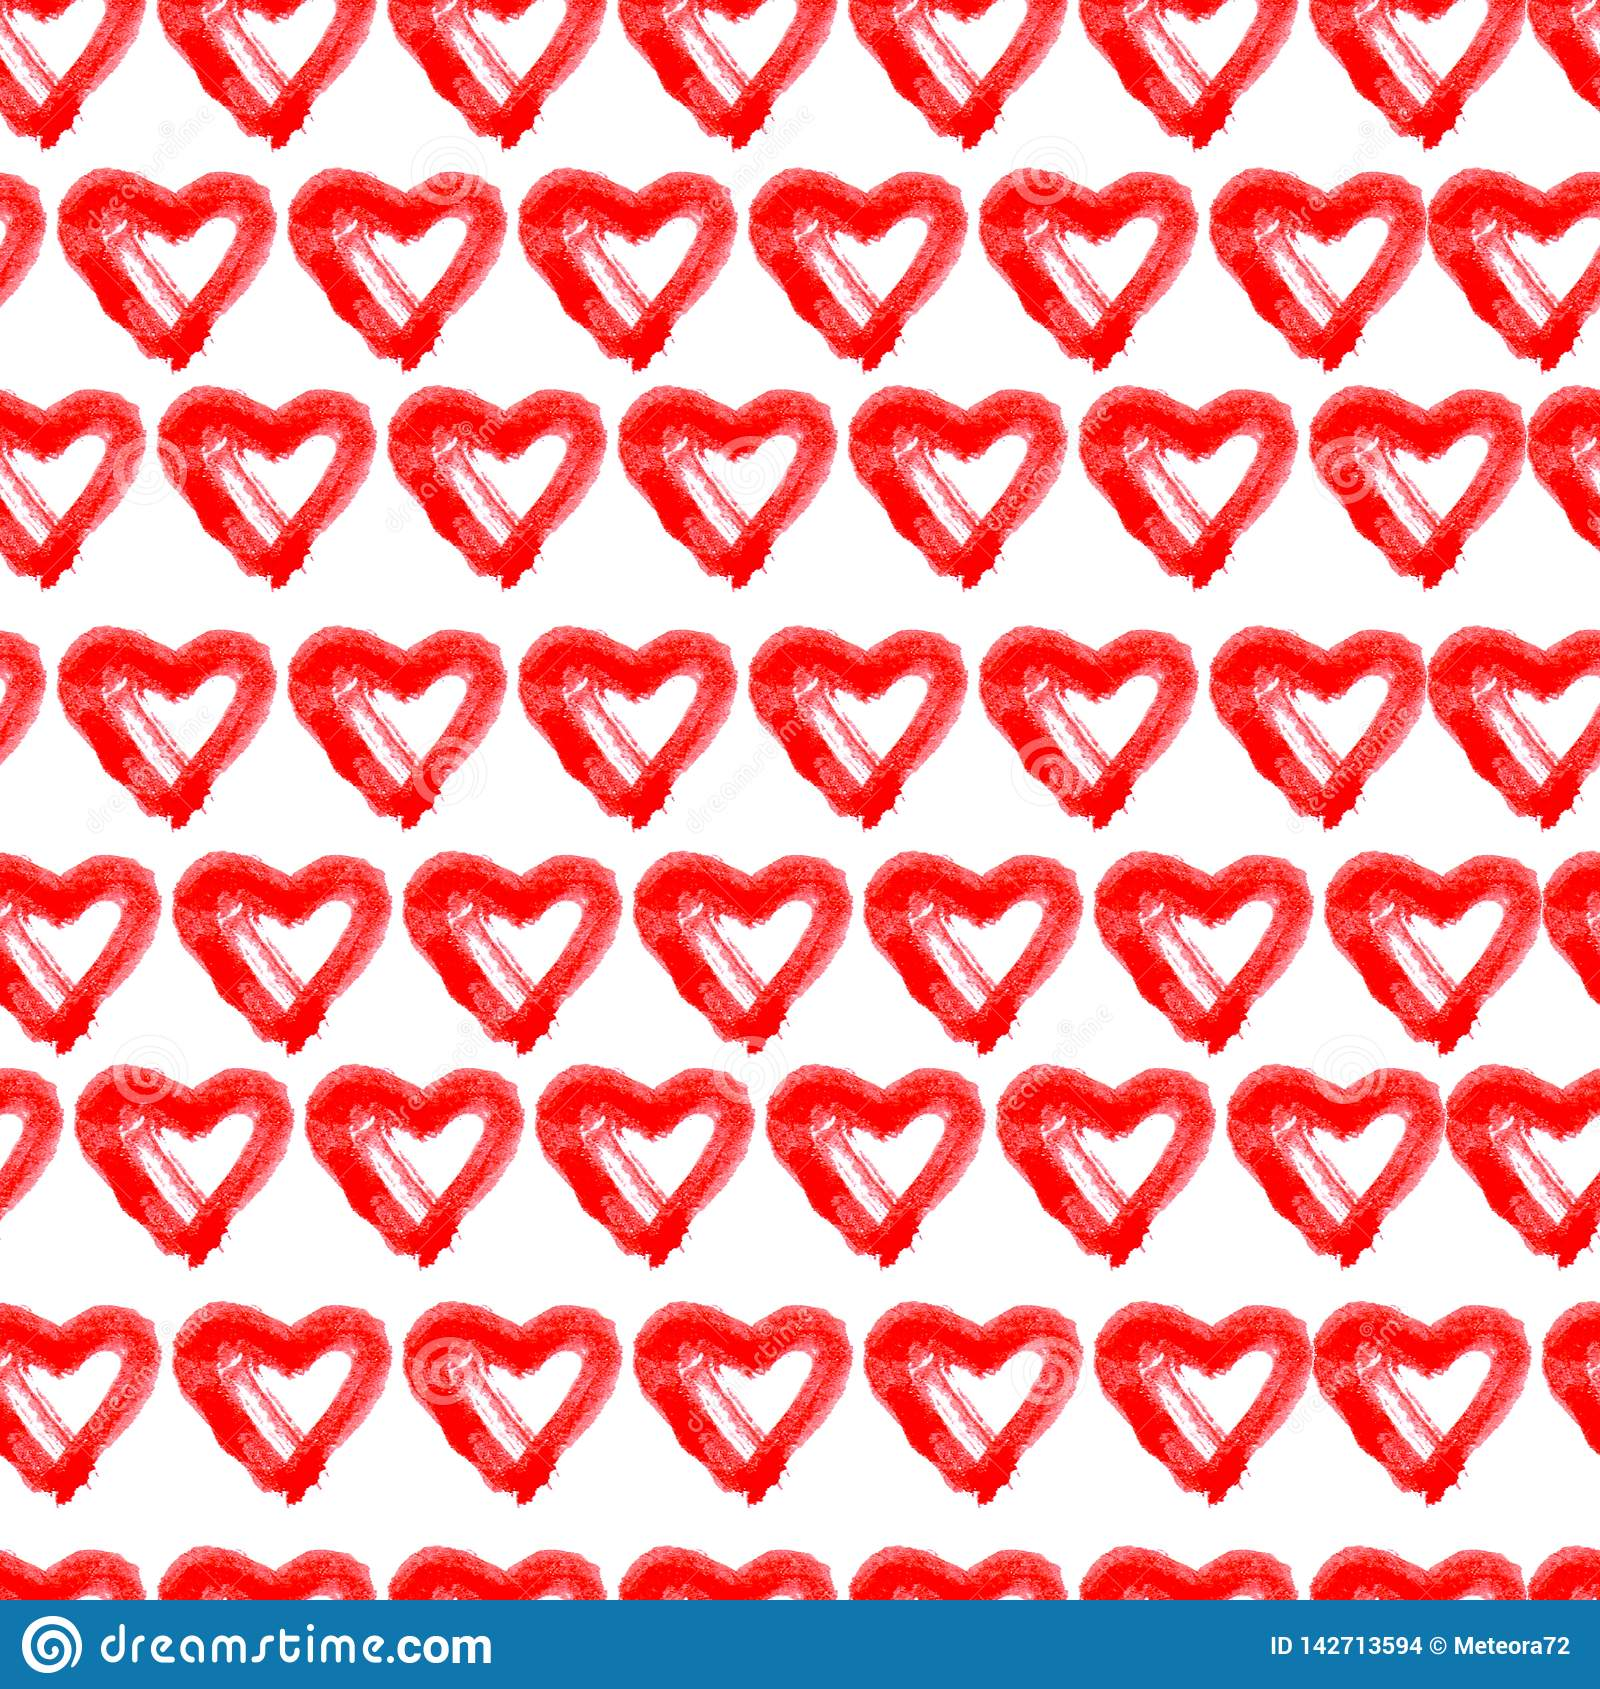 Hand drawn seamless red hearts background